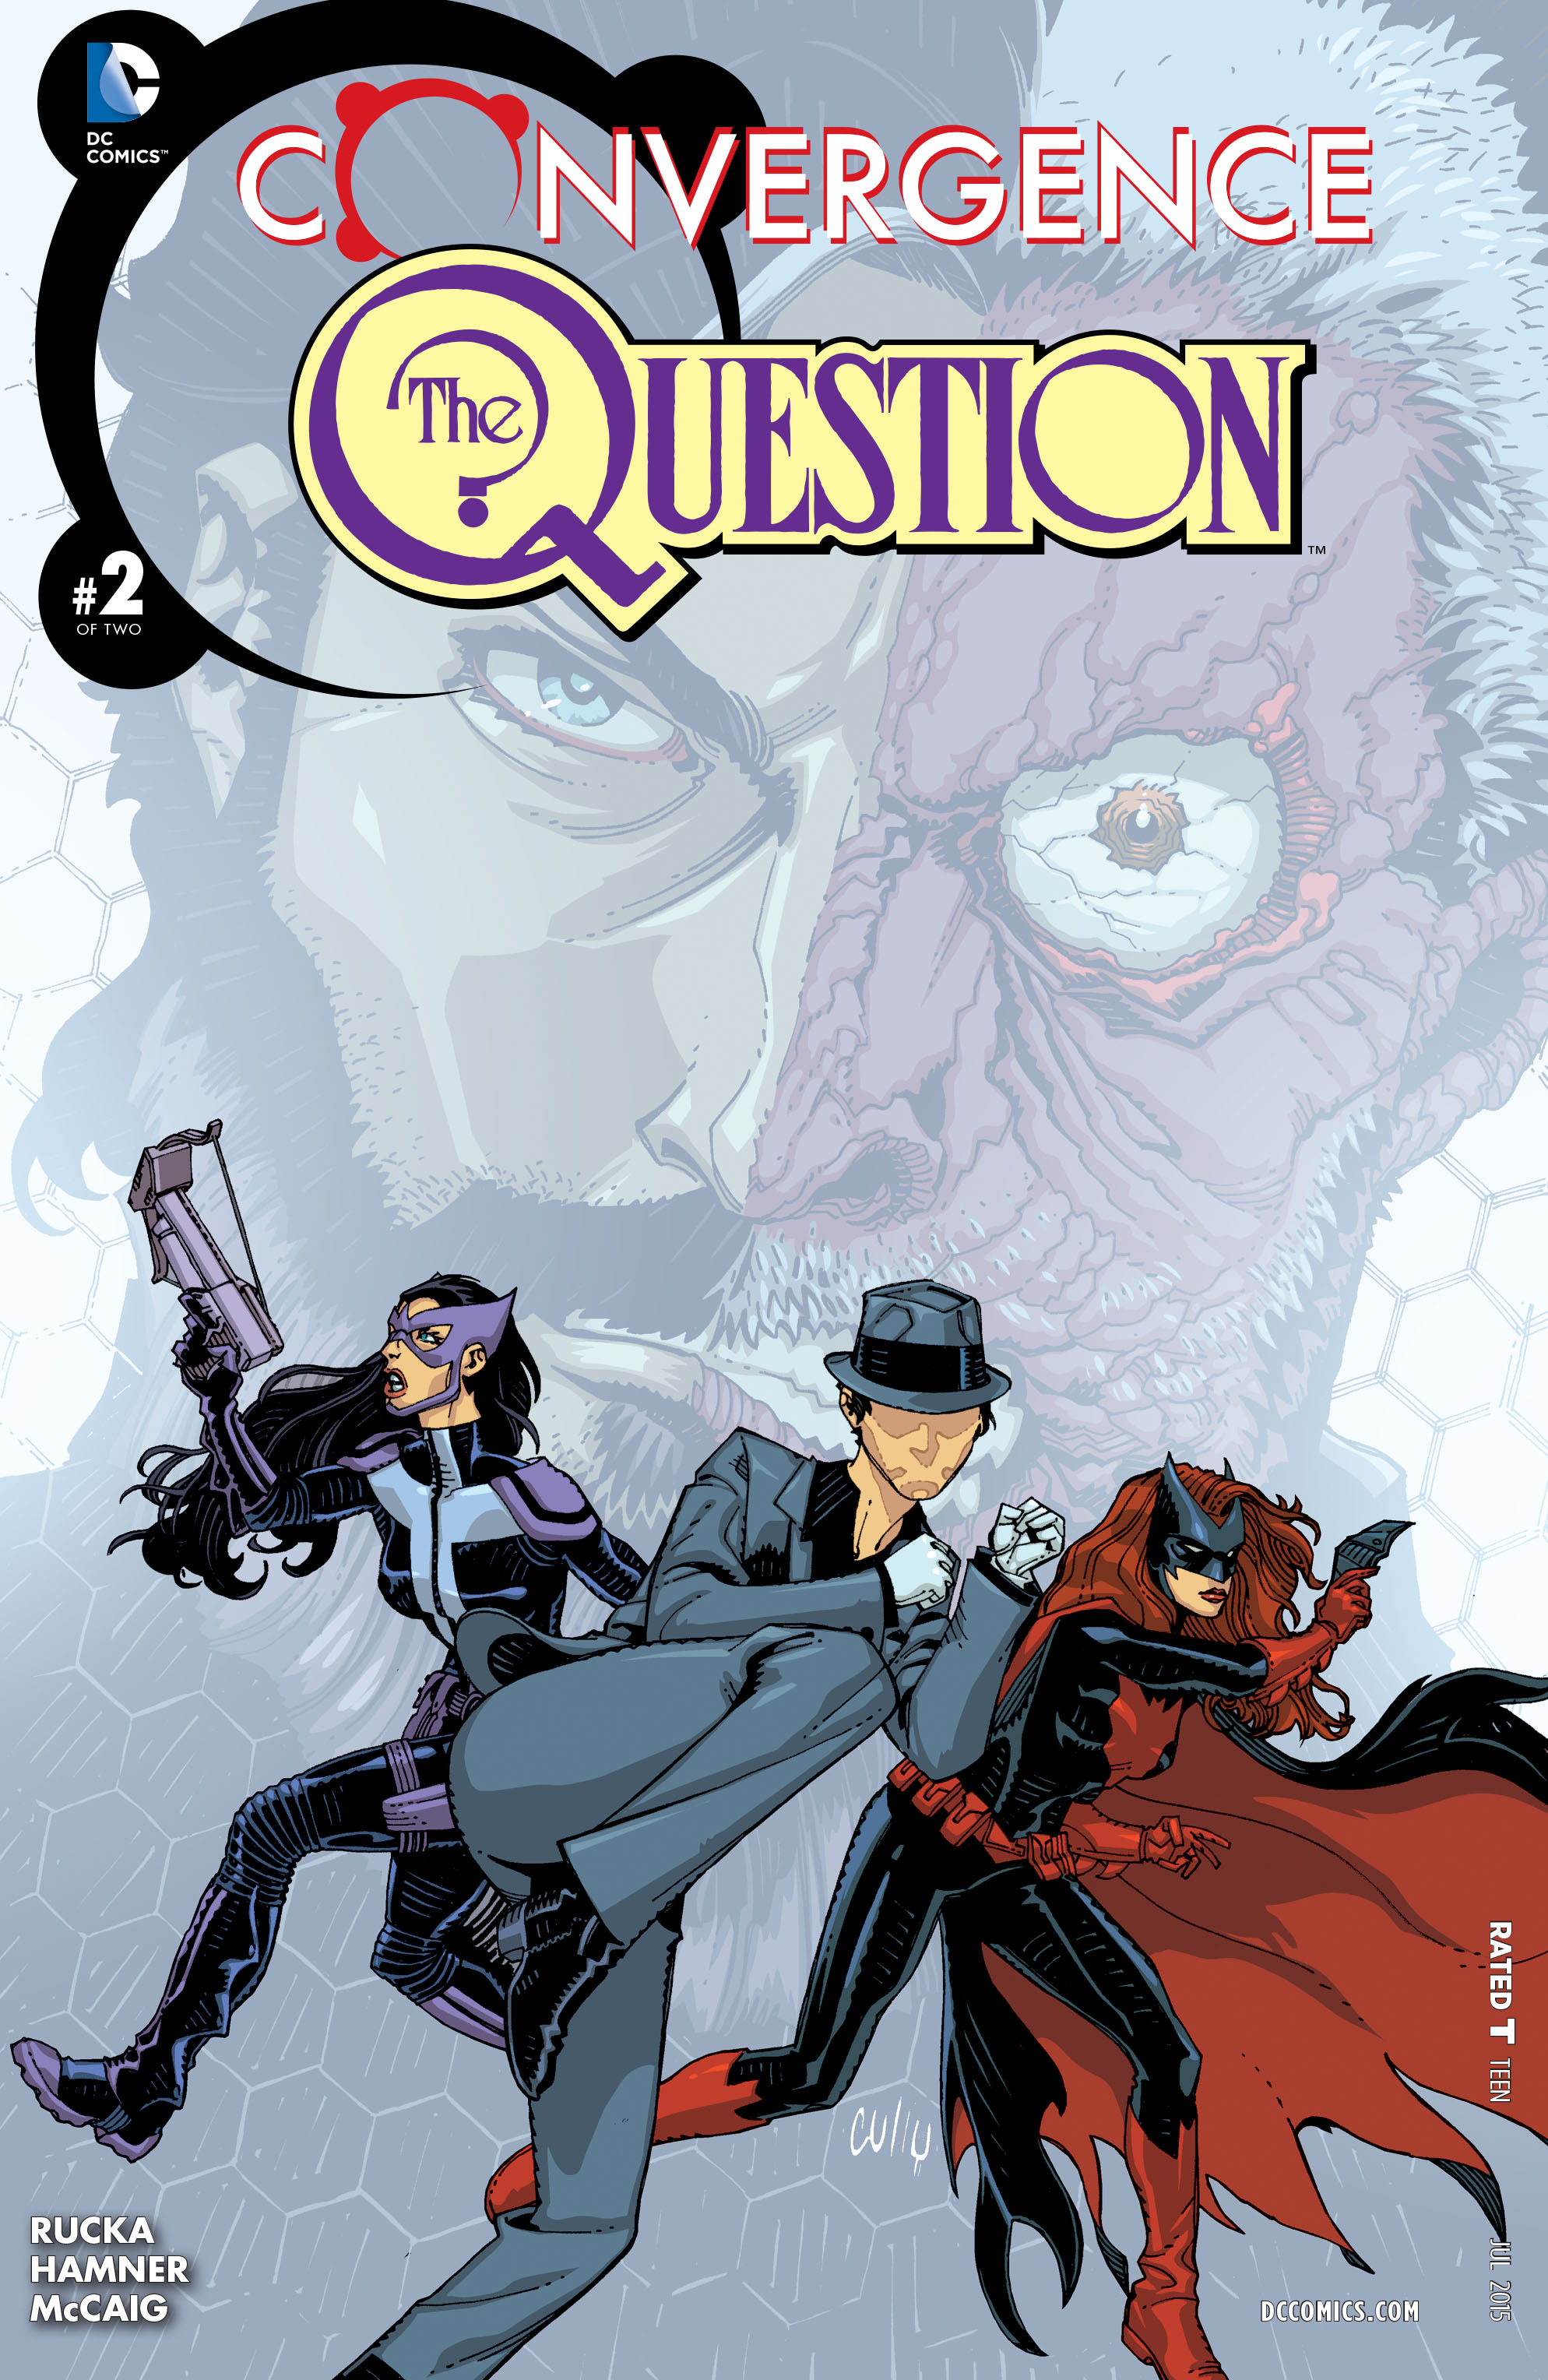 Convergence: The Question Vol 1 2